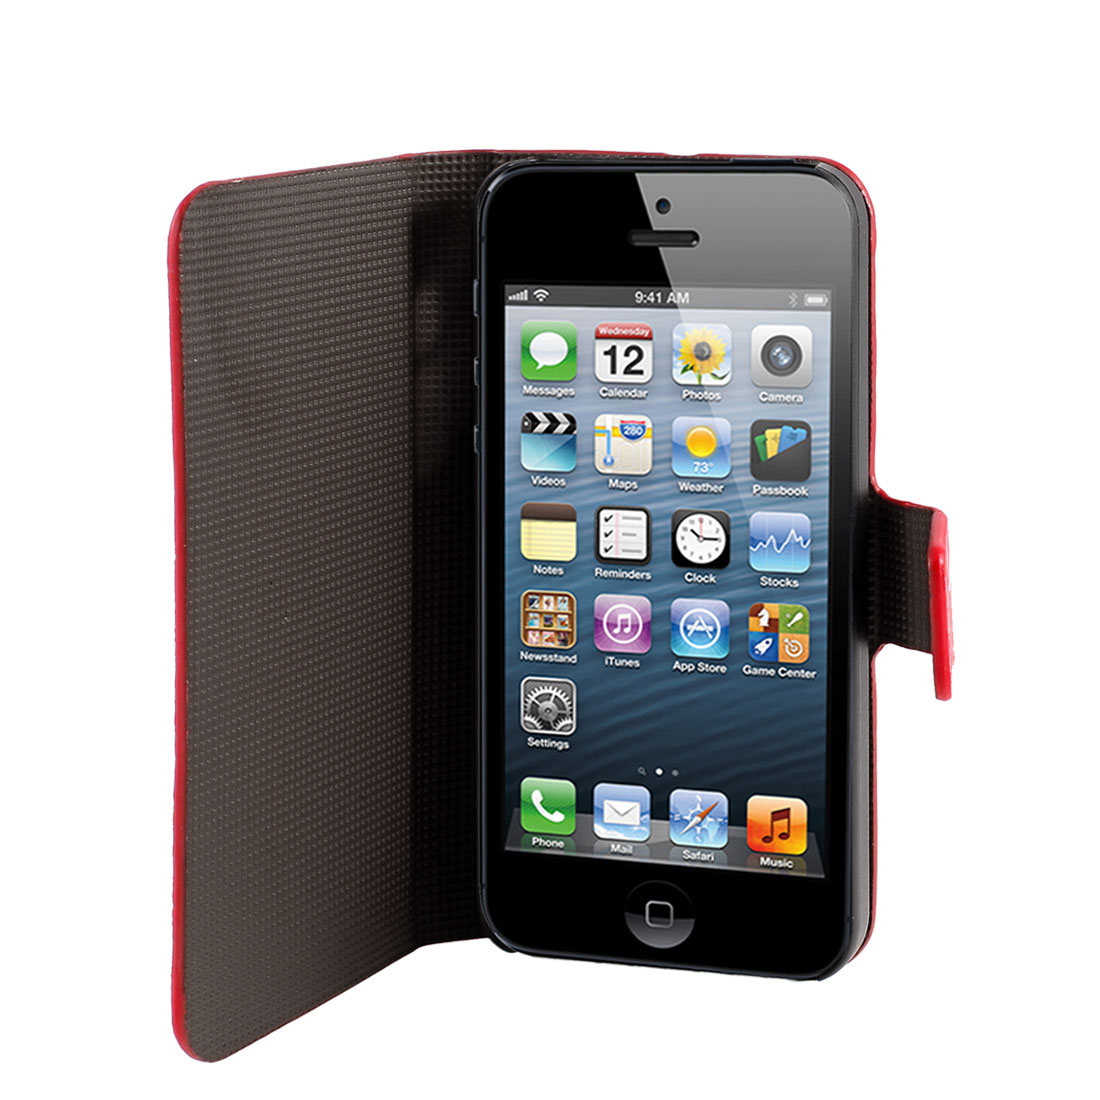 Red Lightning Pattern PU Leather Flip Case Cover Guard for iPhone 5 5G 5th